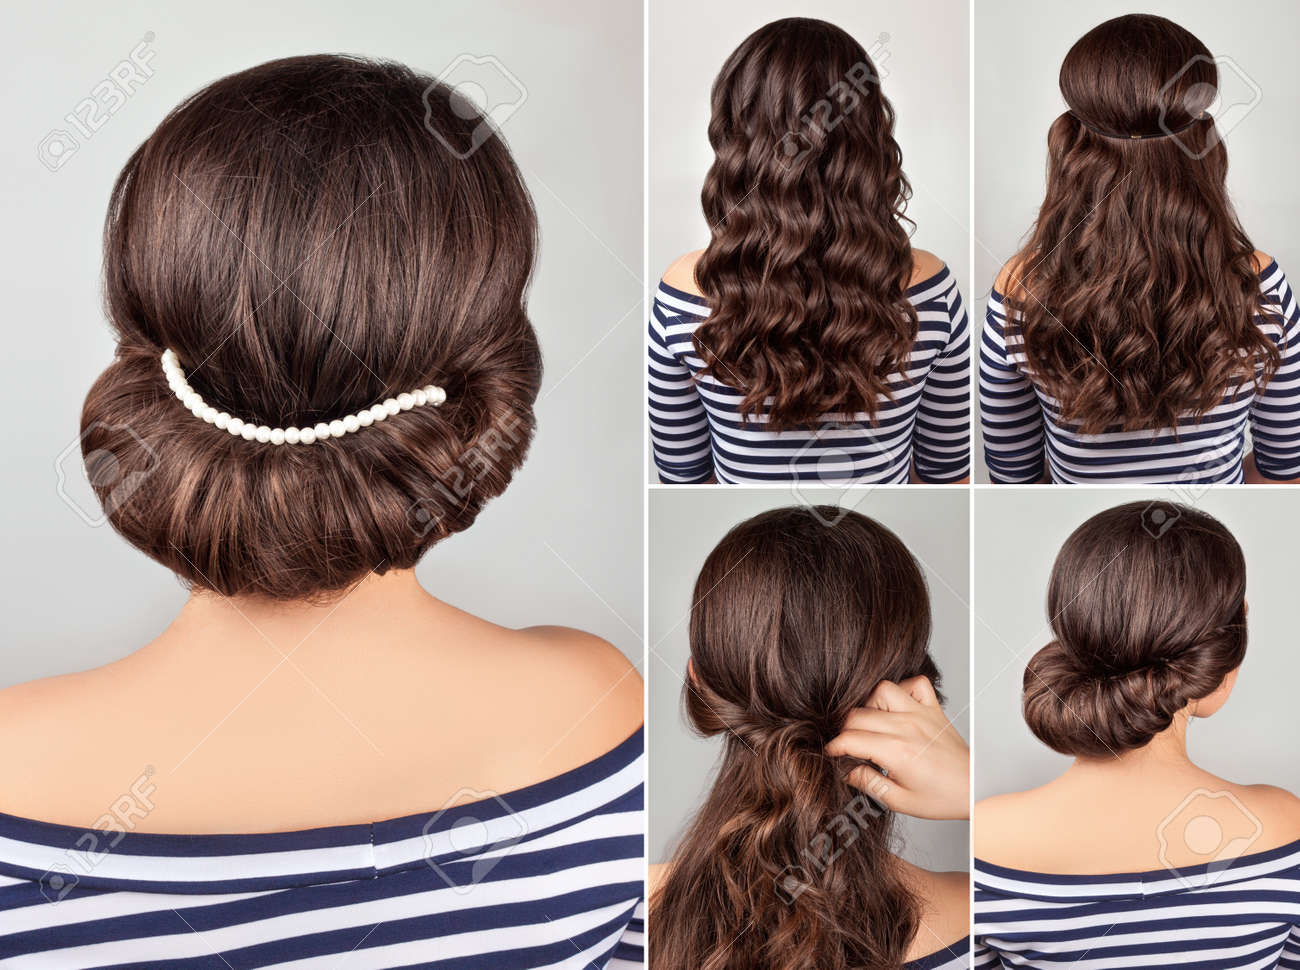 greek style hairdo with string of pearls tutorial. Hairstyle for long hair. Sea style. - 58145245